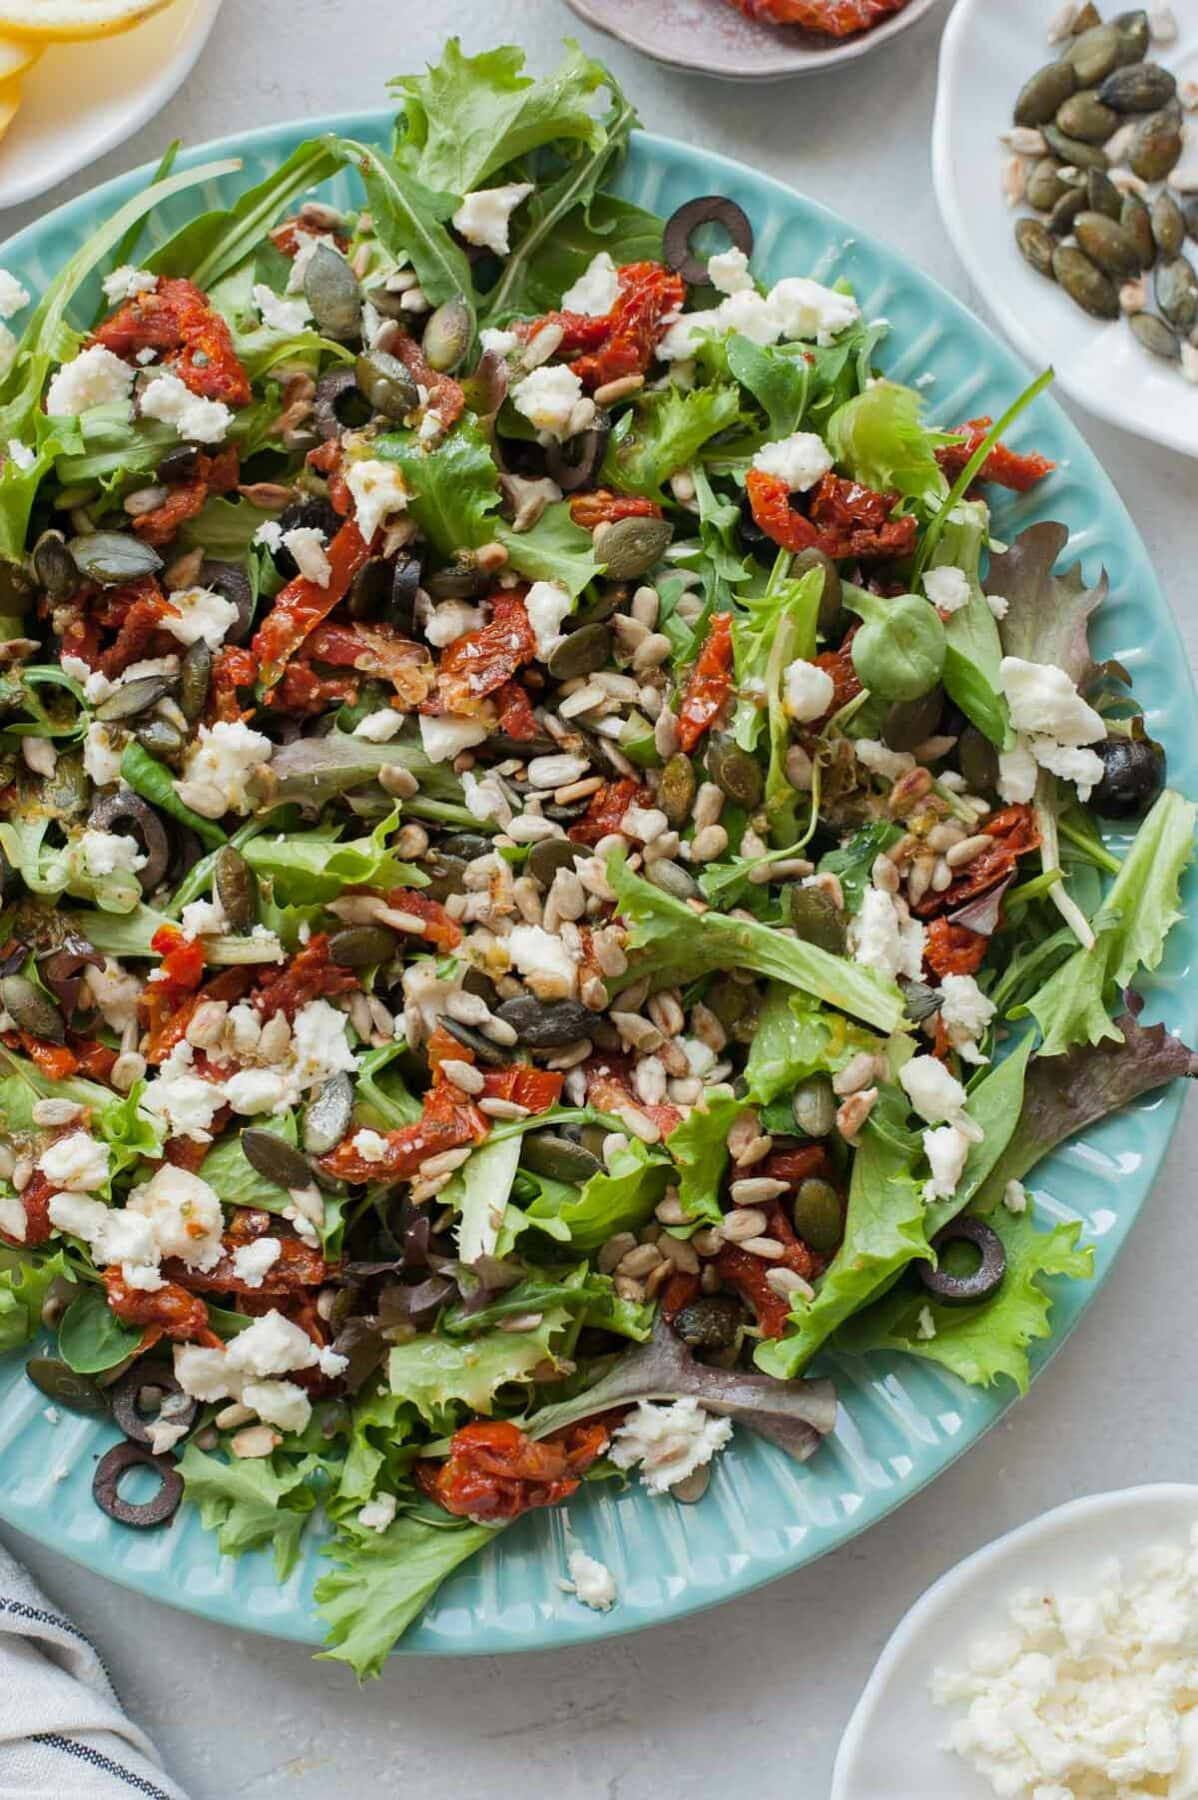 Sun-dried tomatoes salad with olives and feta on a green plate.